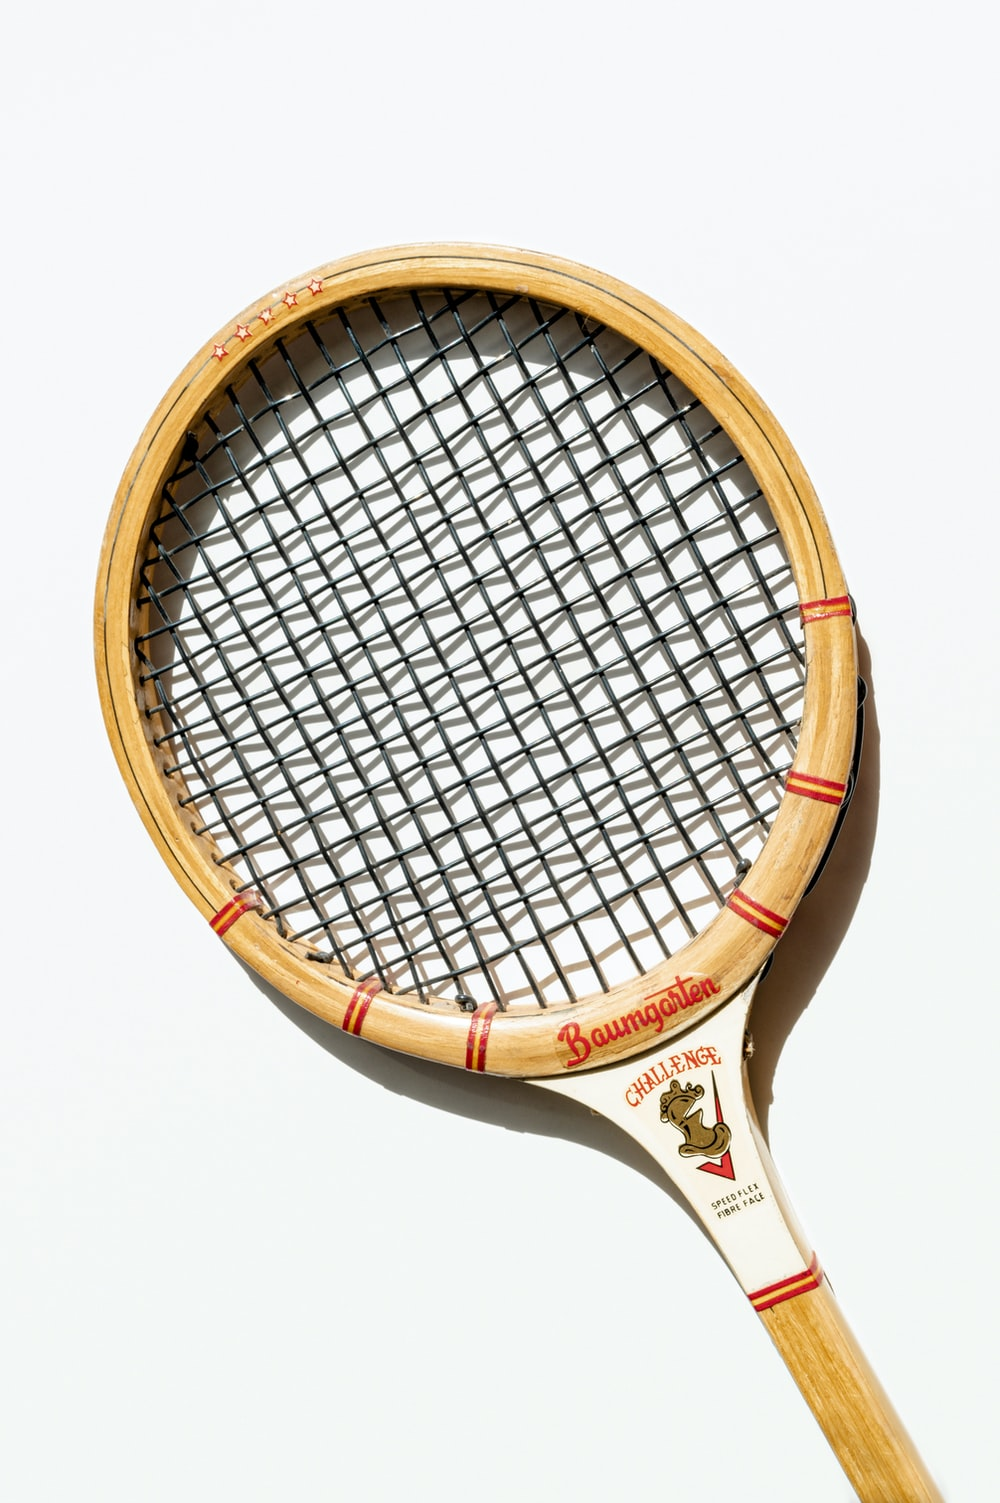 brown and black electric fly swatter